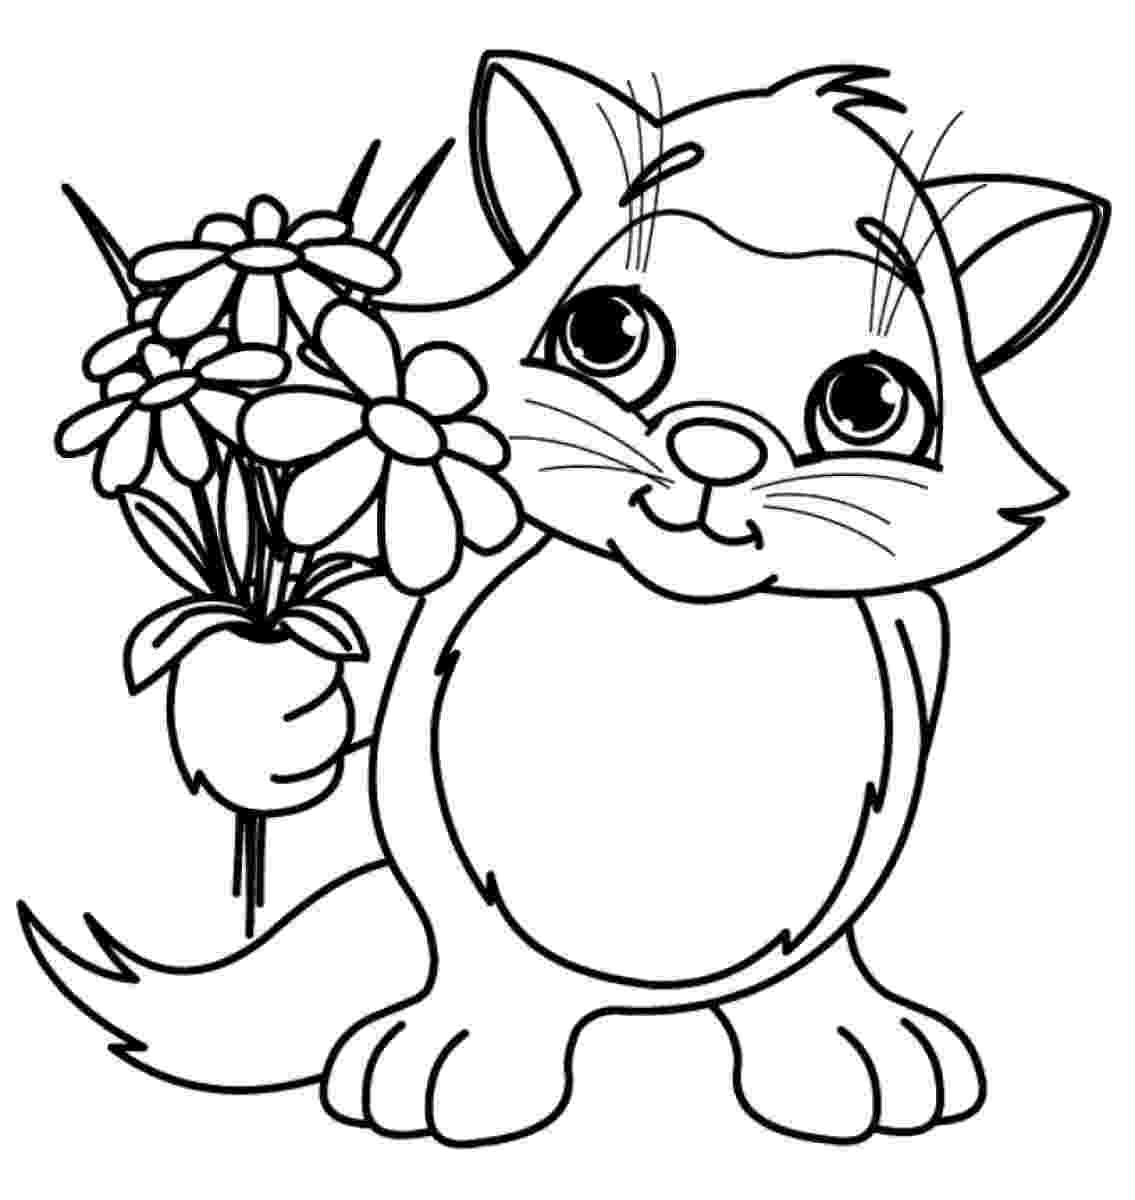 pictures of flowers to color free printables free printable flower coloring pages for kids best free color printables of to flowers pictures